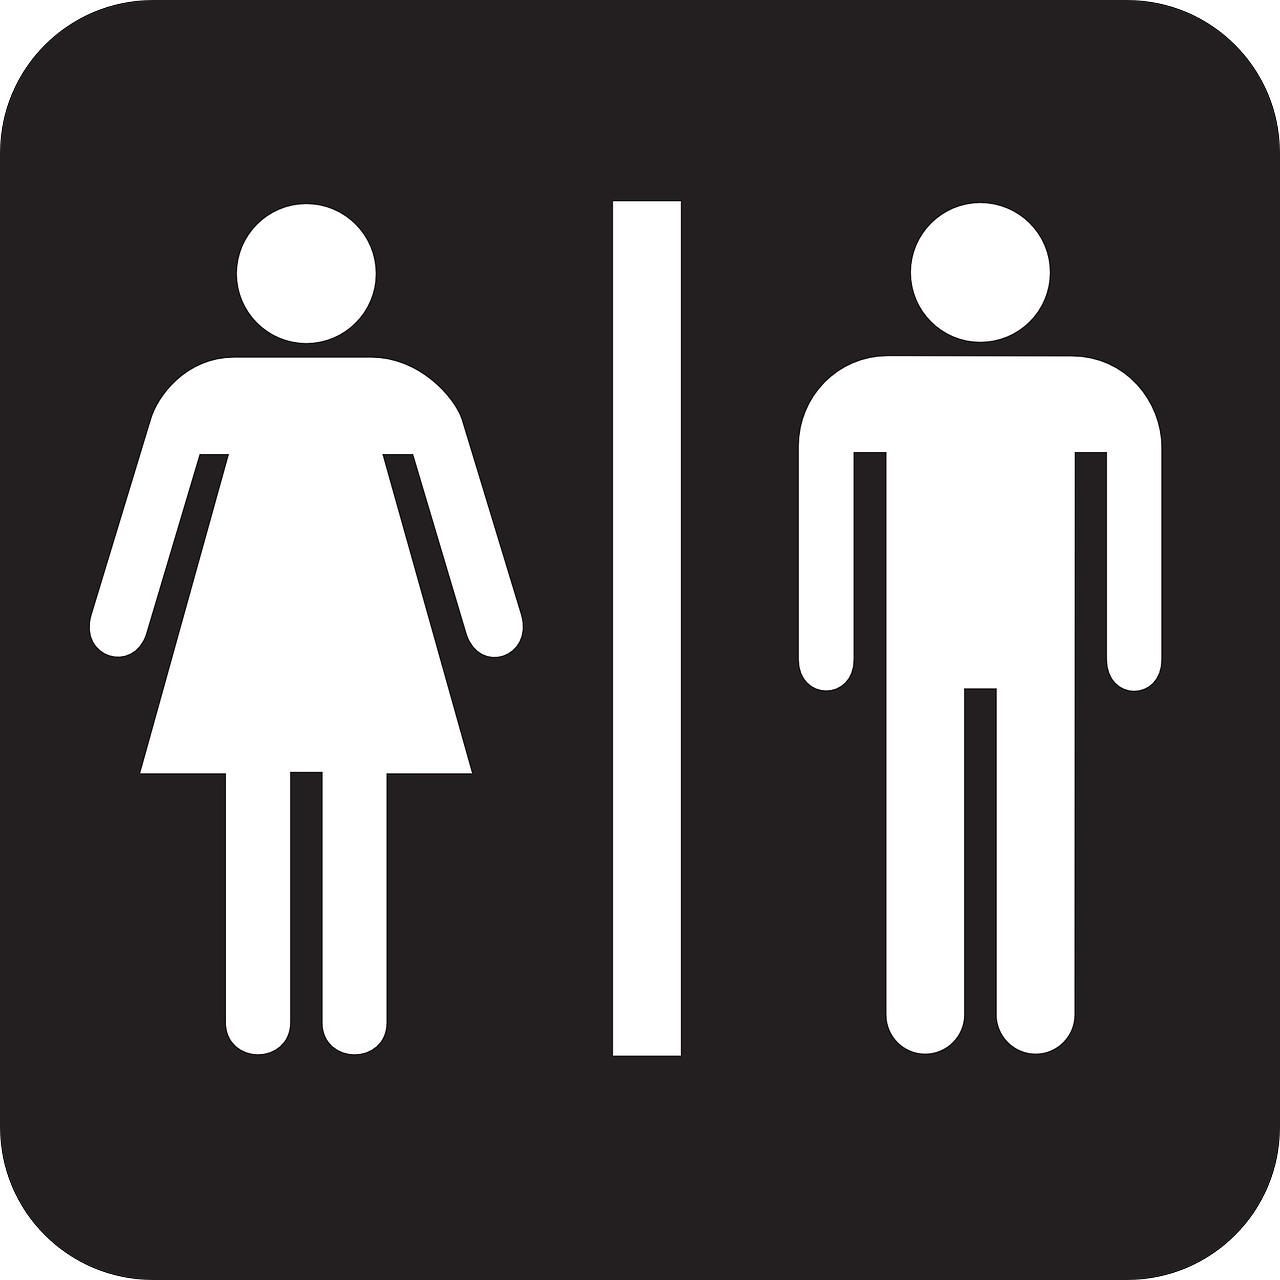 bathroom door restroom metal pin male female woman sign man gender his